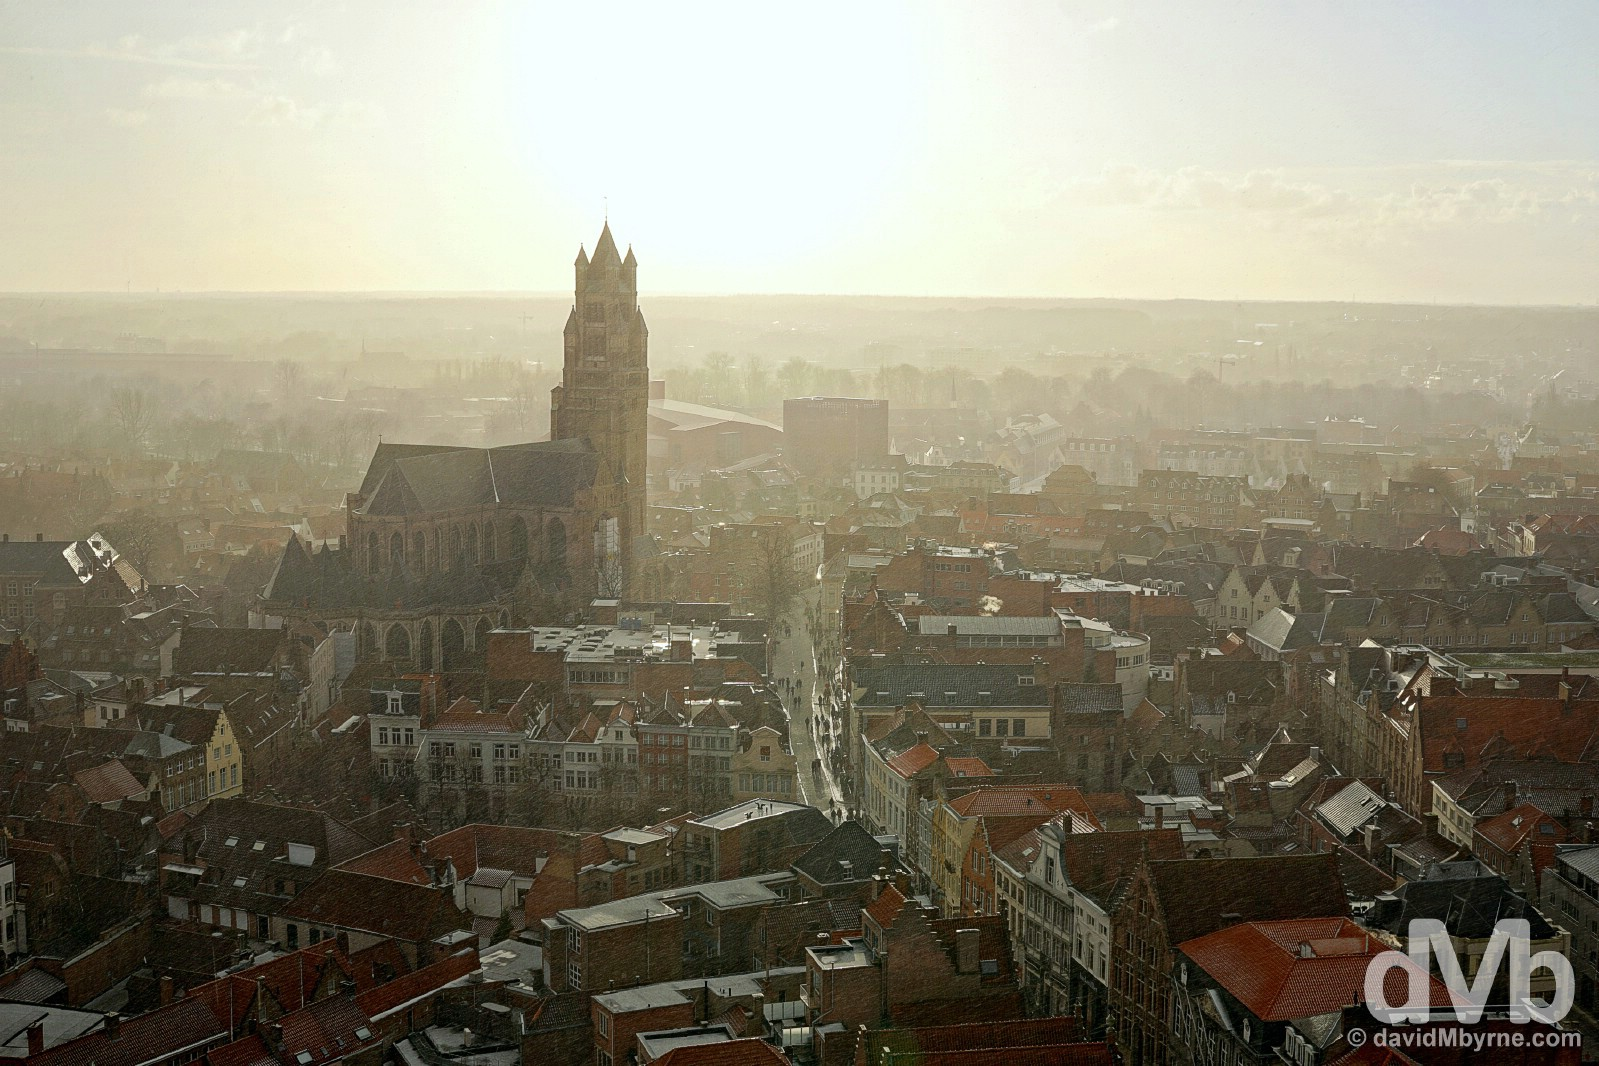 St Salvatorskathedraal and western Bruges during a late afternoon hail shower as seen from the city's Belfort. Bruges, western Flanders, Belgium. January 16, 2015.